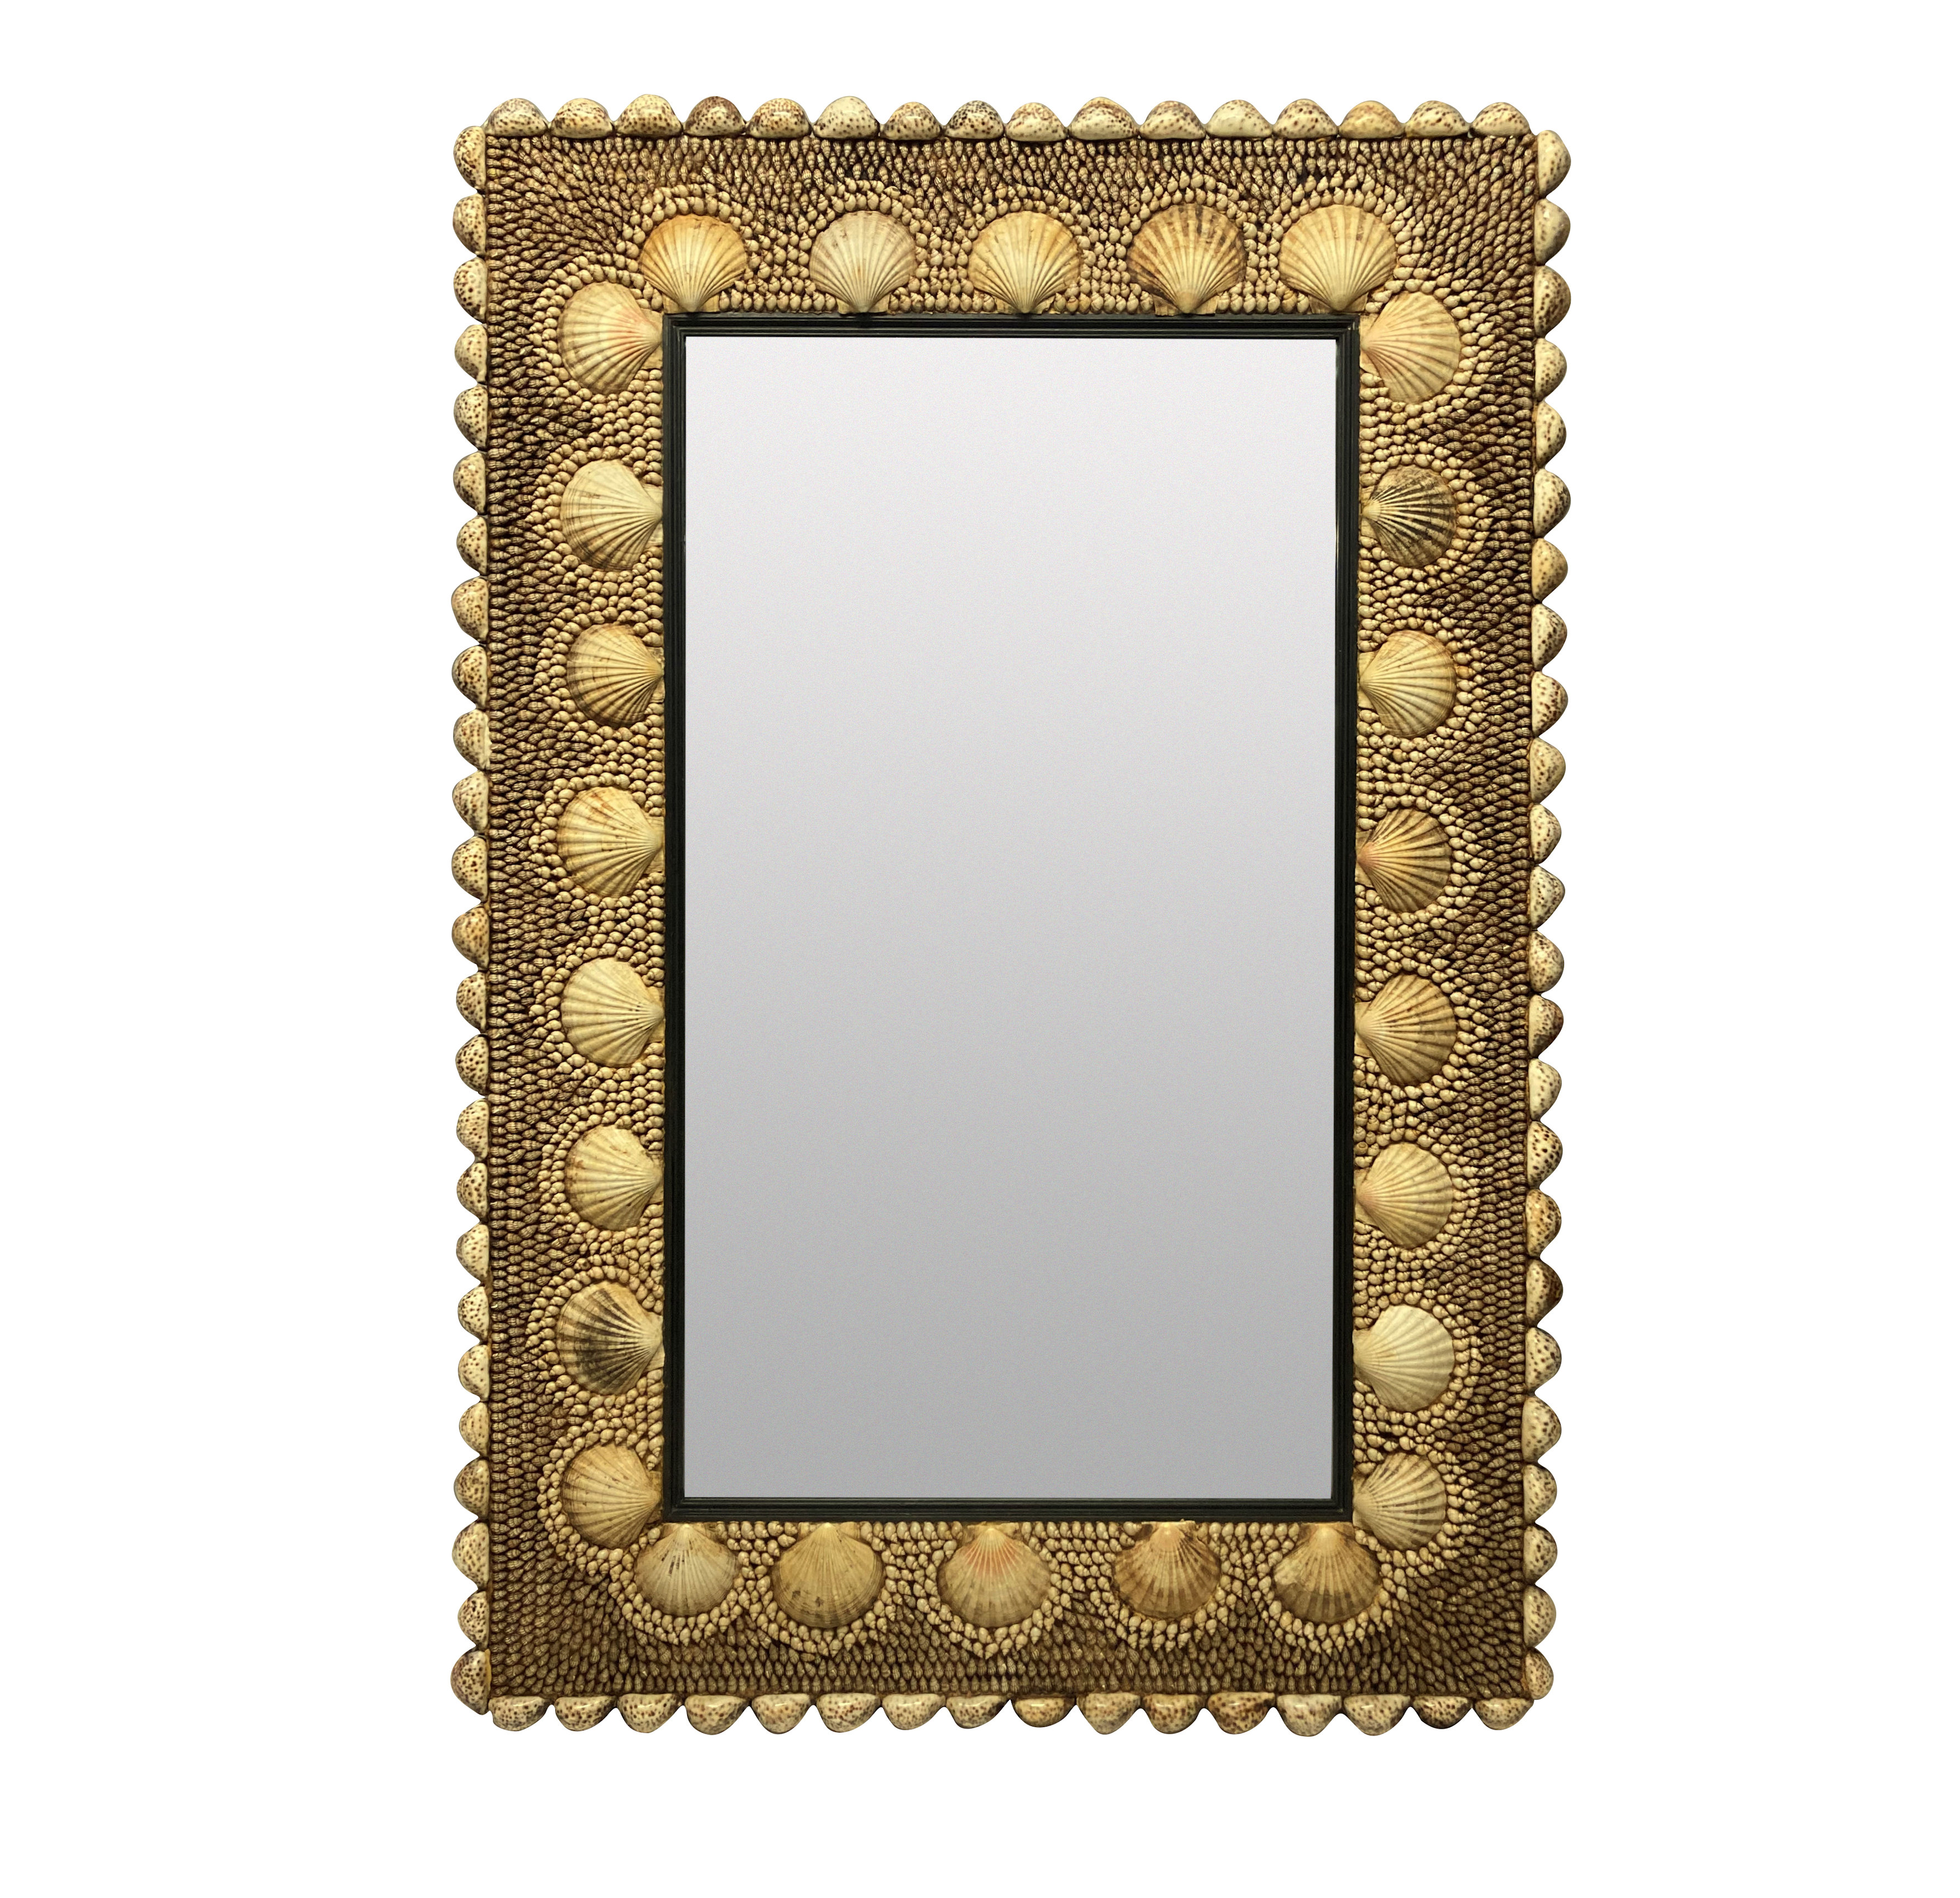 A LARGE SHELL ENCRUSTED MIRROR BY REDMILE